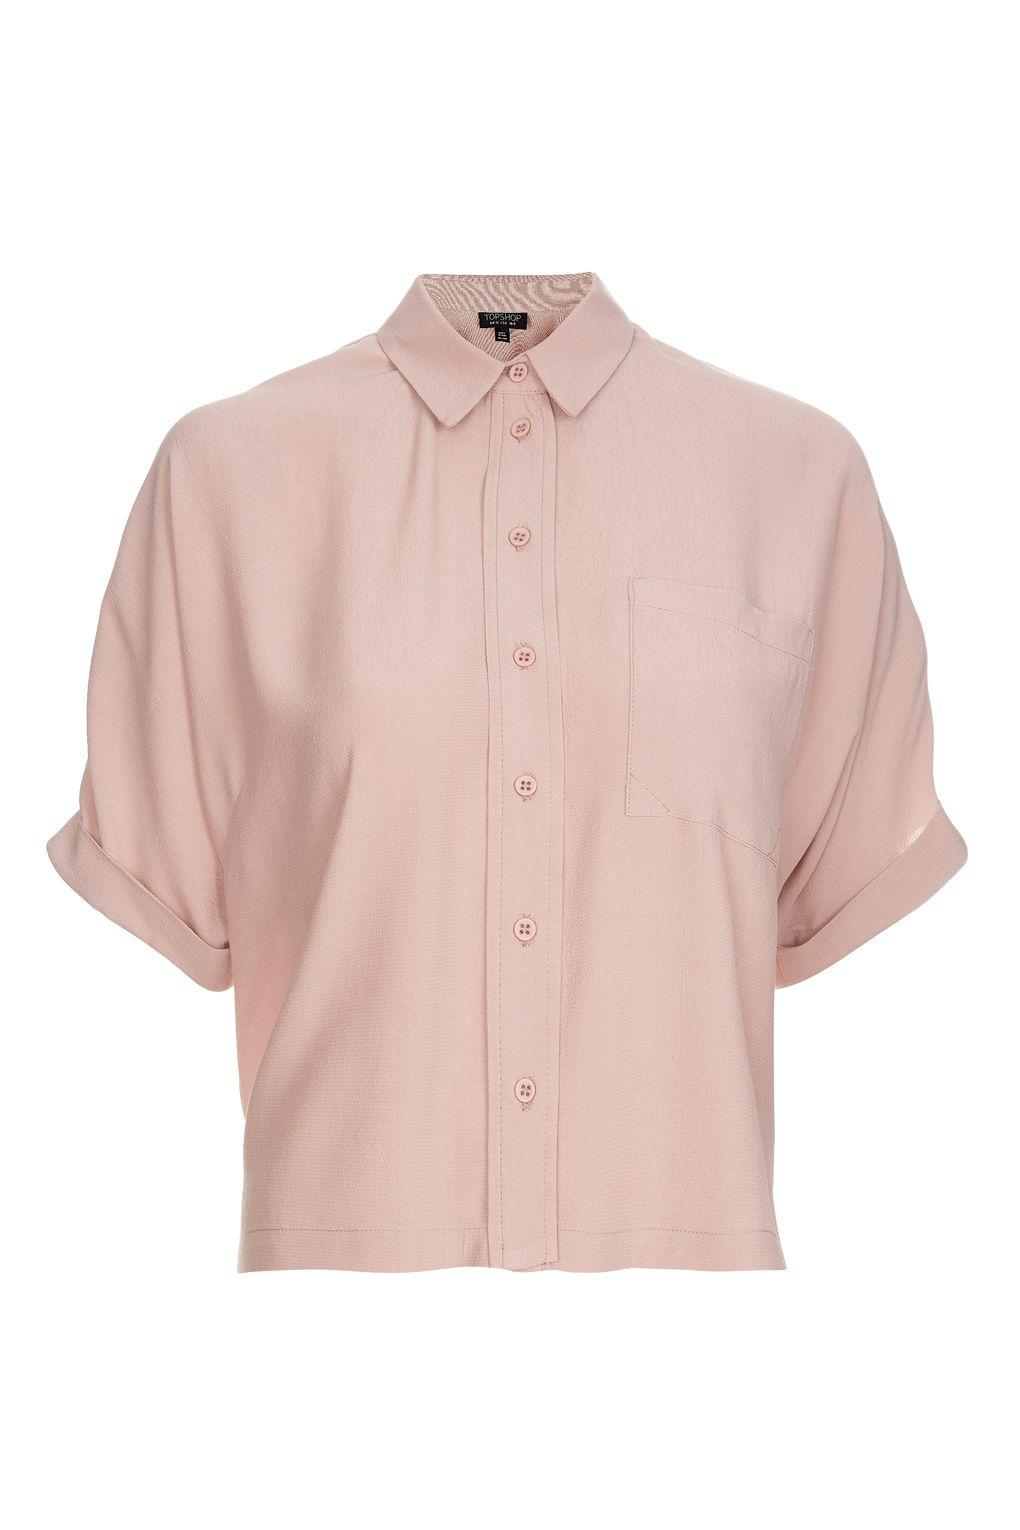 Topshop Dusty Pink Short Sleeve Roll Up Shirt In Pink Lyst